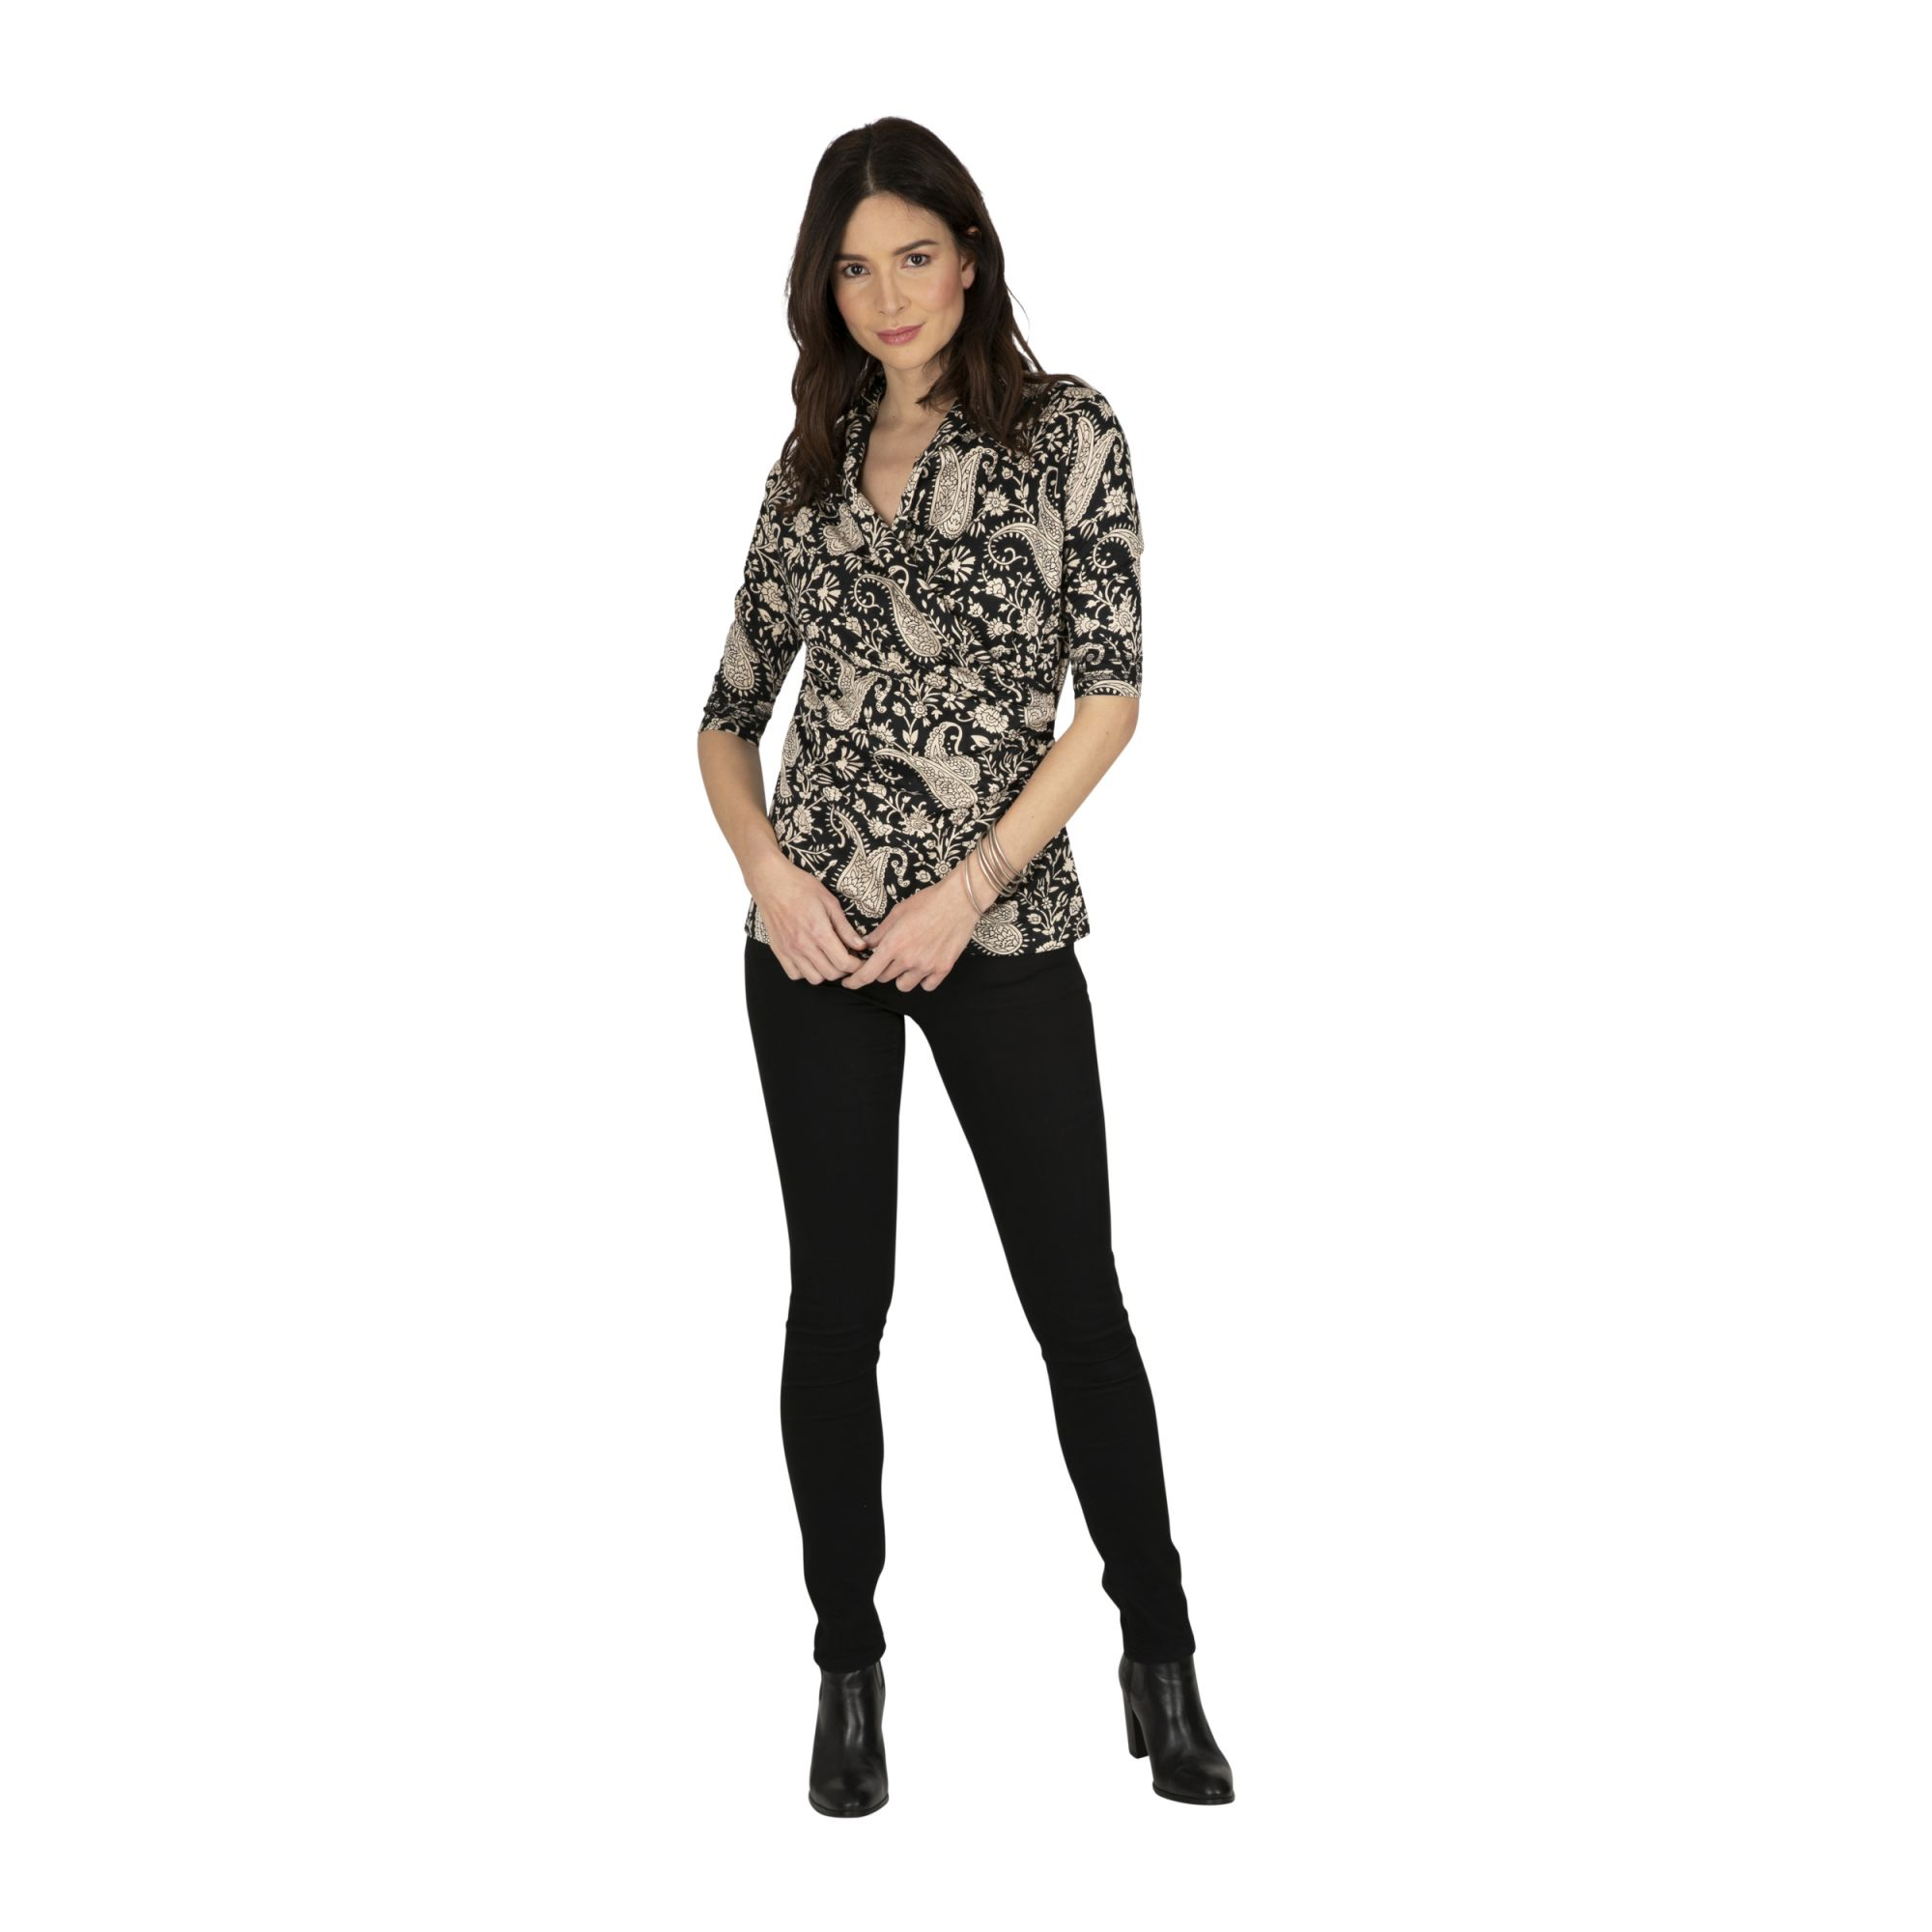 Tee-shirt femme pas cher chic manches 3/4 Wakiso